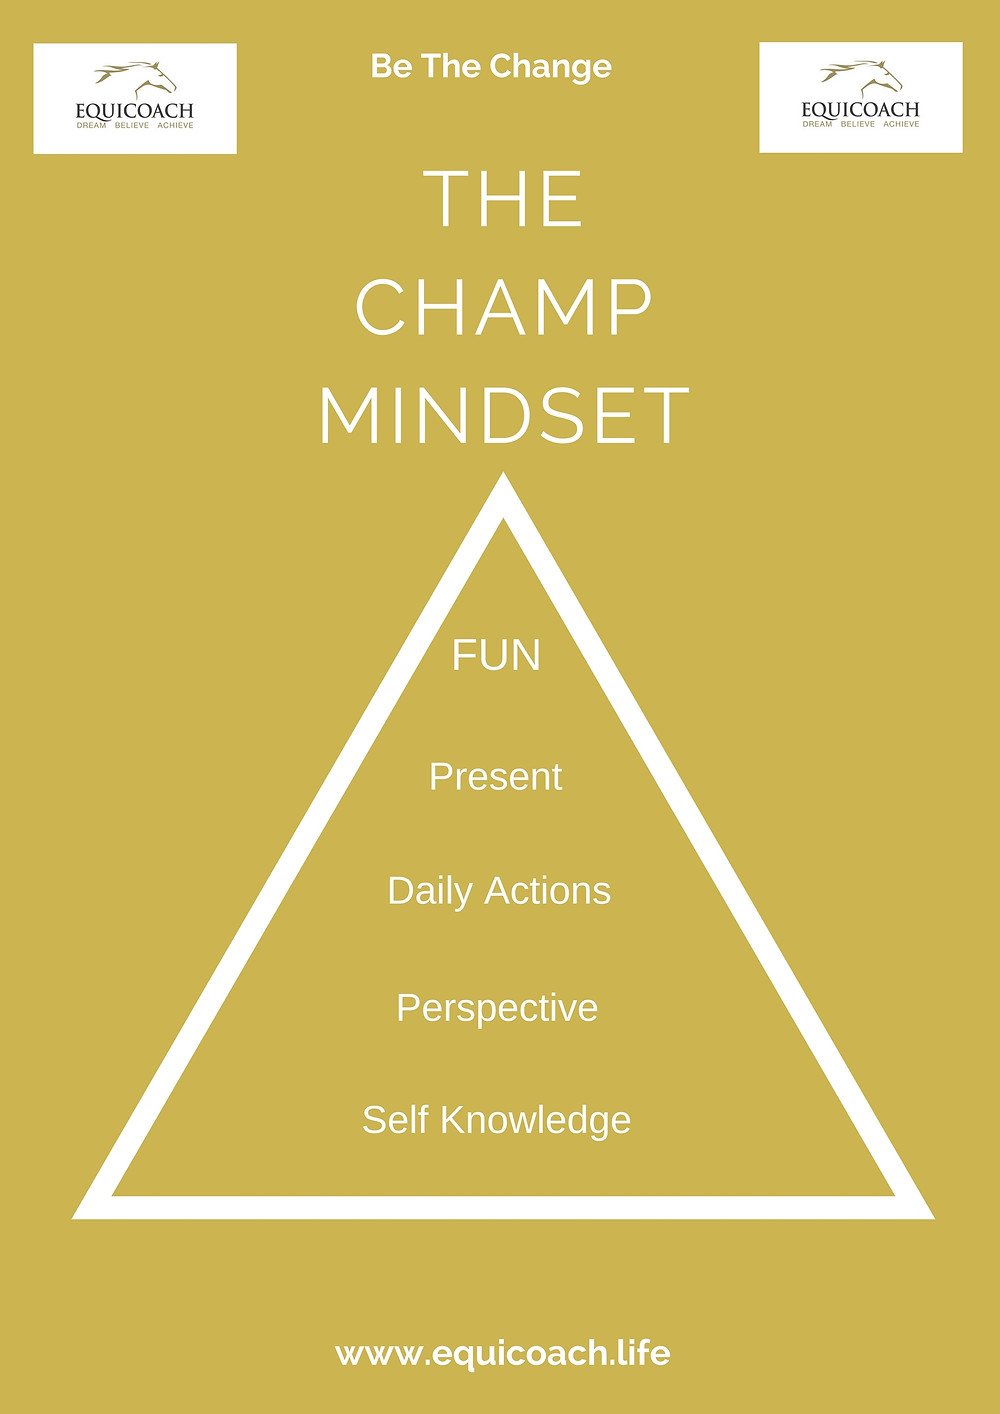 The Champ Mindset Model